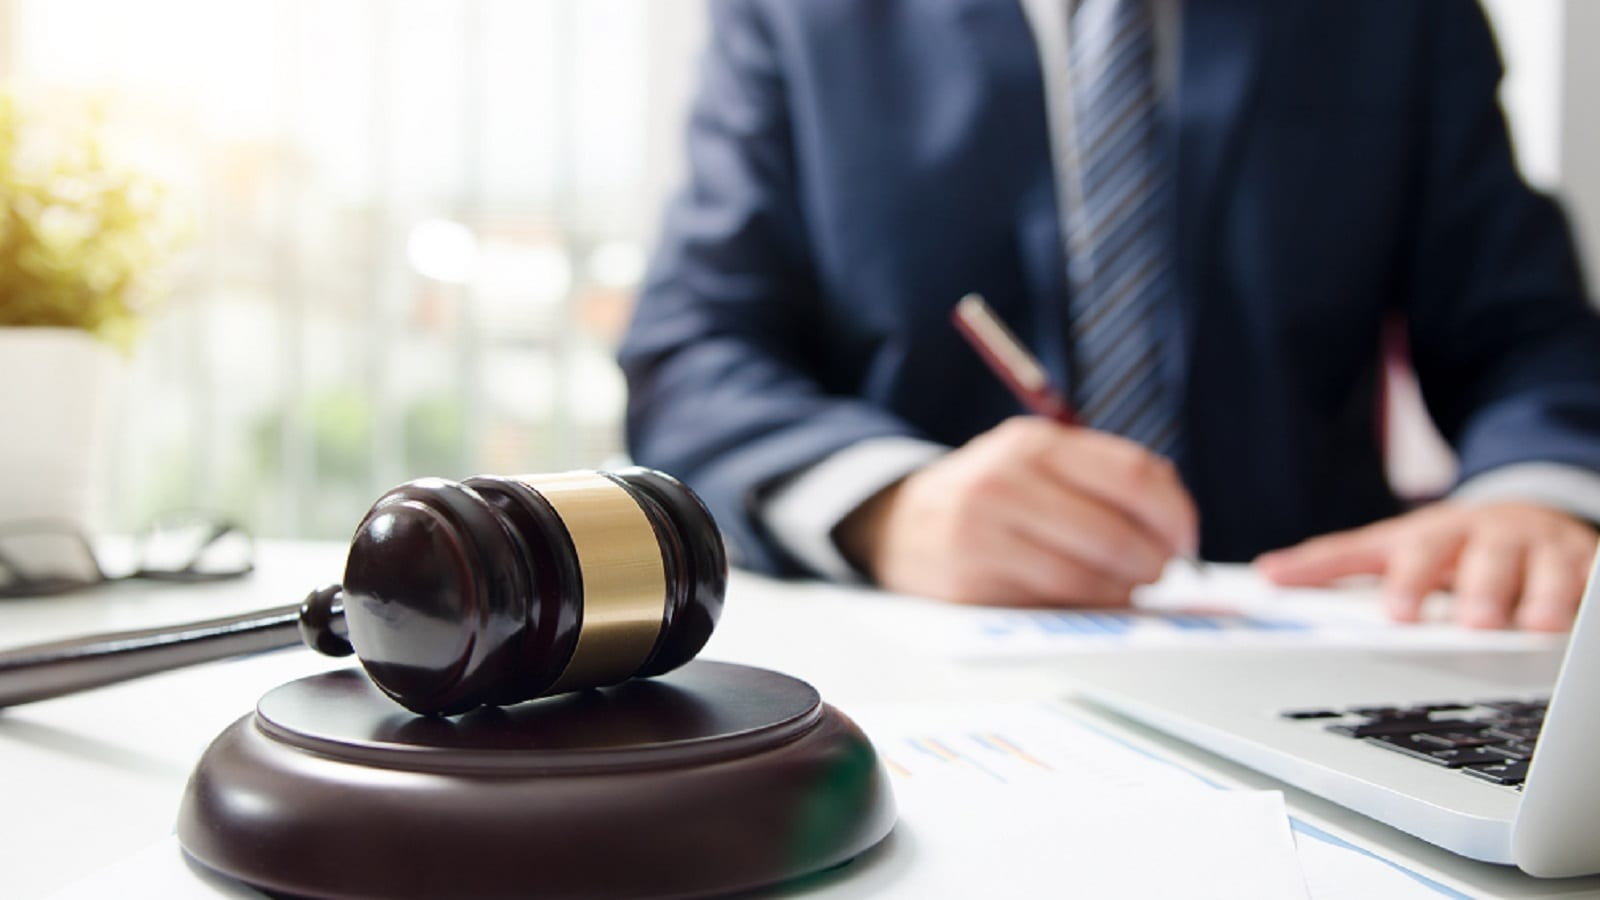 Attorney Signing A Document Next To A Wooden Gavel